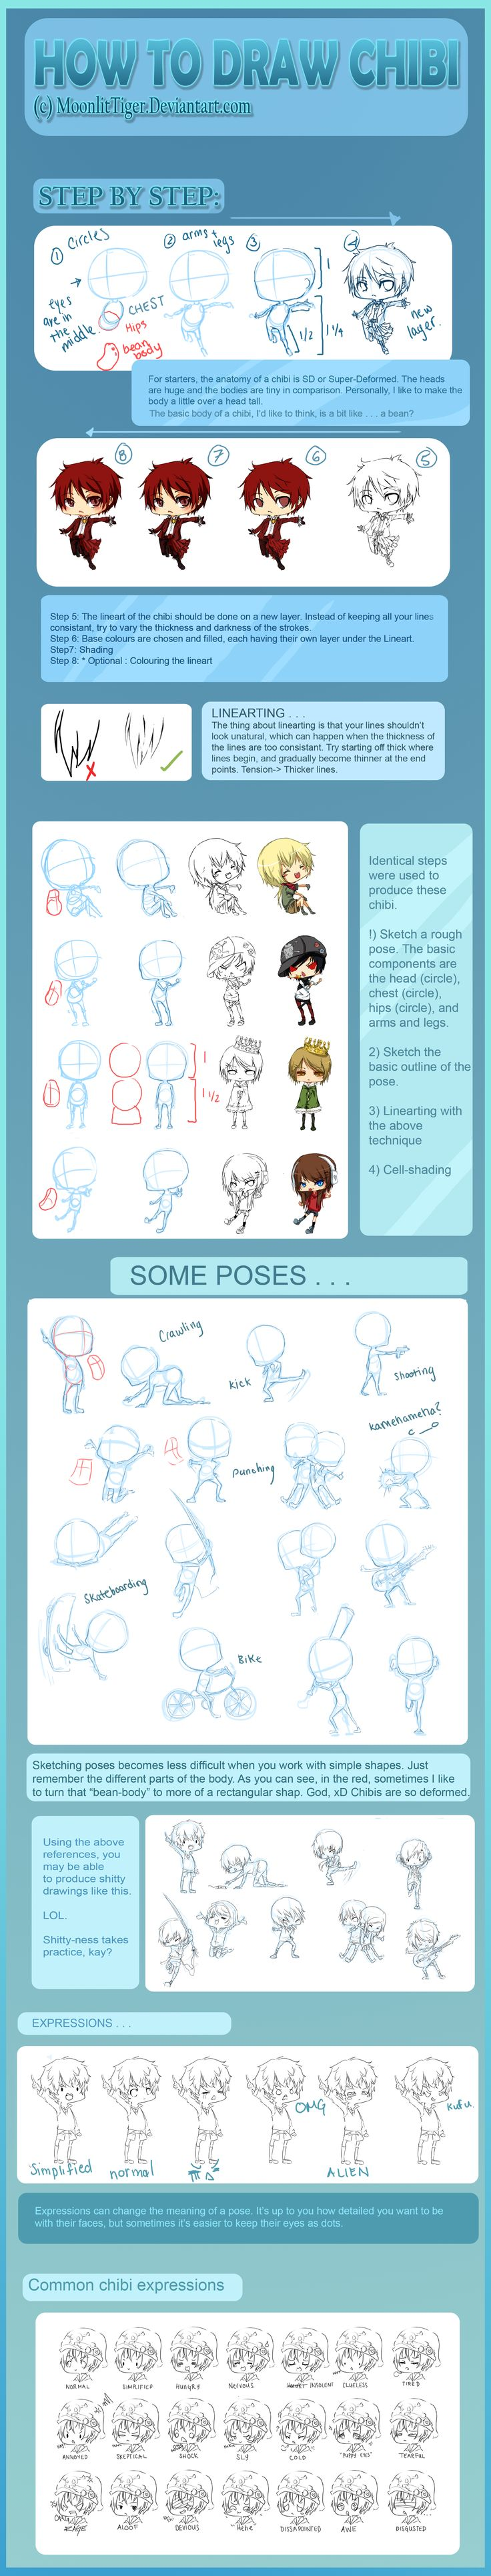 Mega_Chibi_Tutorial_by_MoonlitTiger. How to draw Chibi People, chibi drawing tutorial, reference, pose, Japanese, cute, kawaii, adorable, Chibis , cartoon , how to draw cartoon people